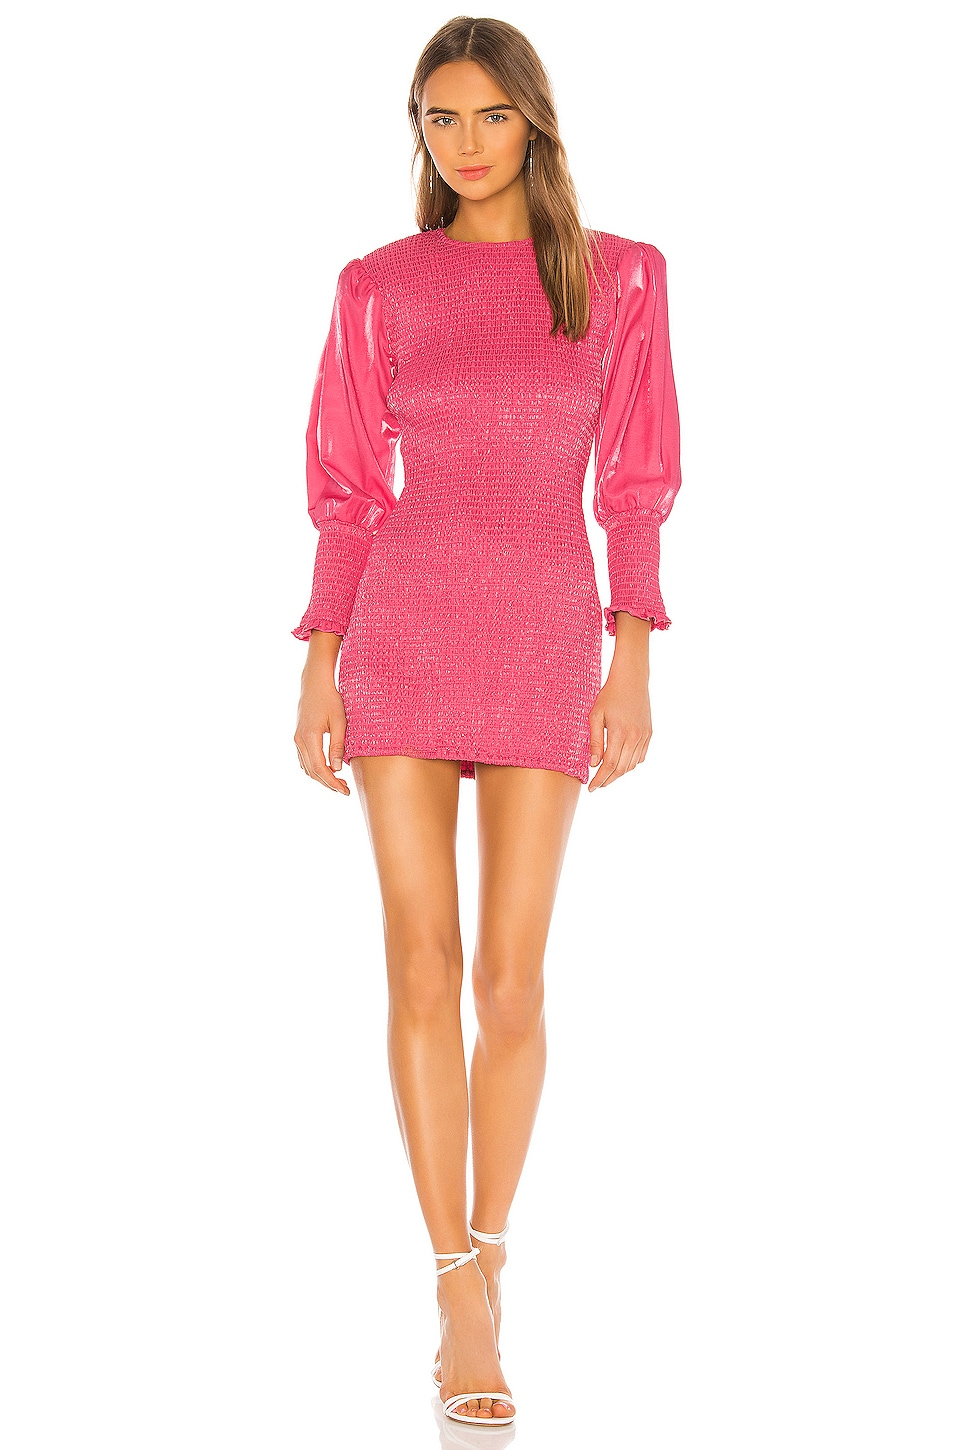 Lovers + Friends Helm Mini Dress in Hot Pink